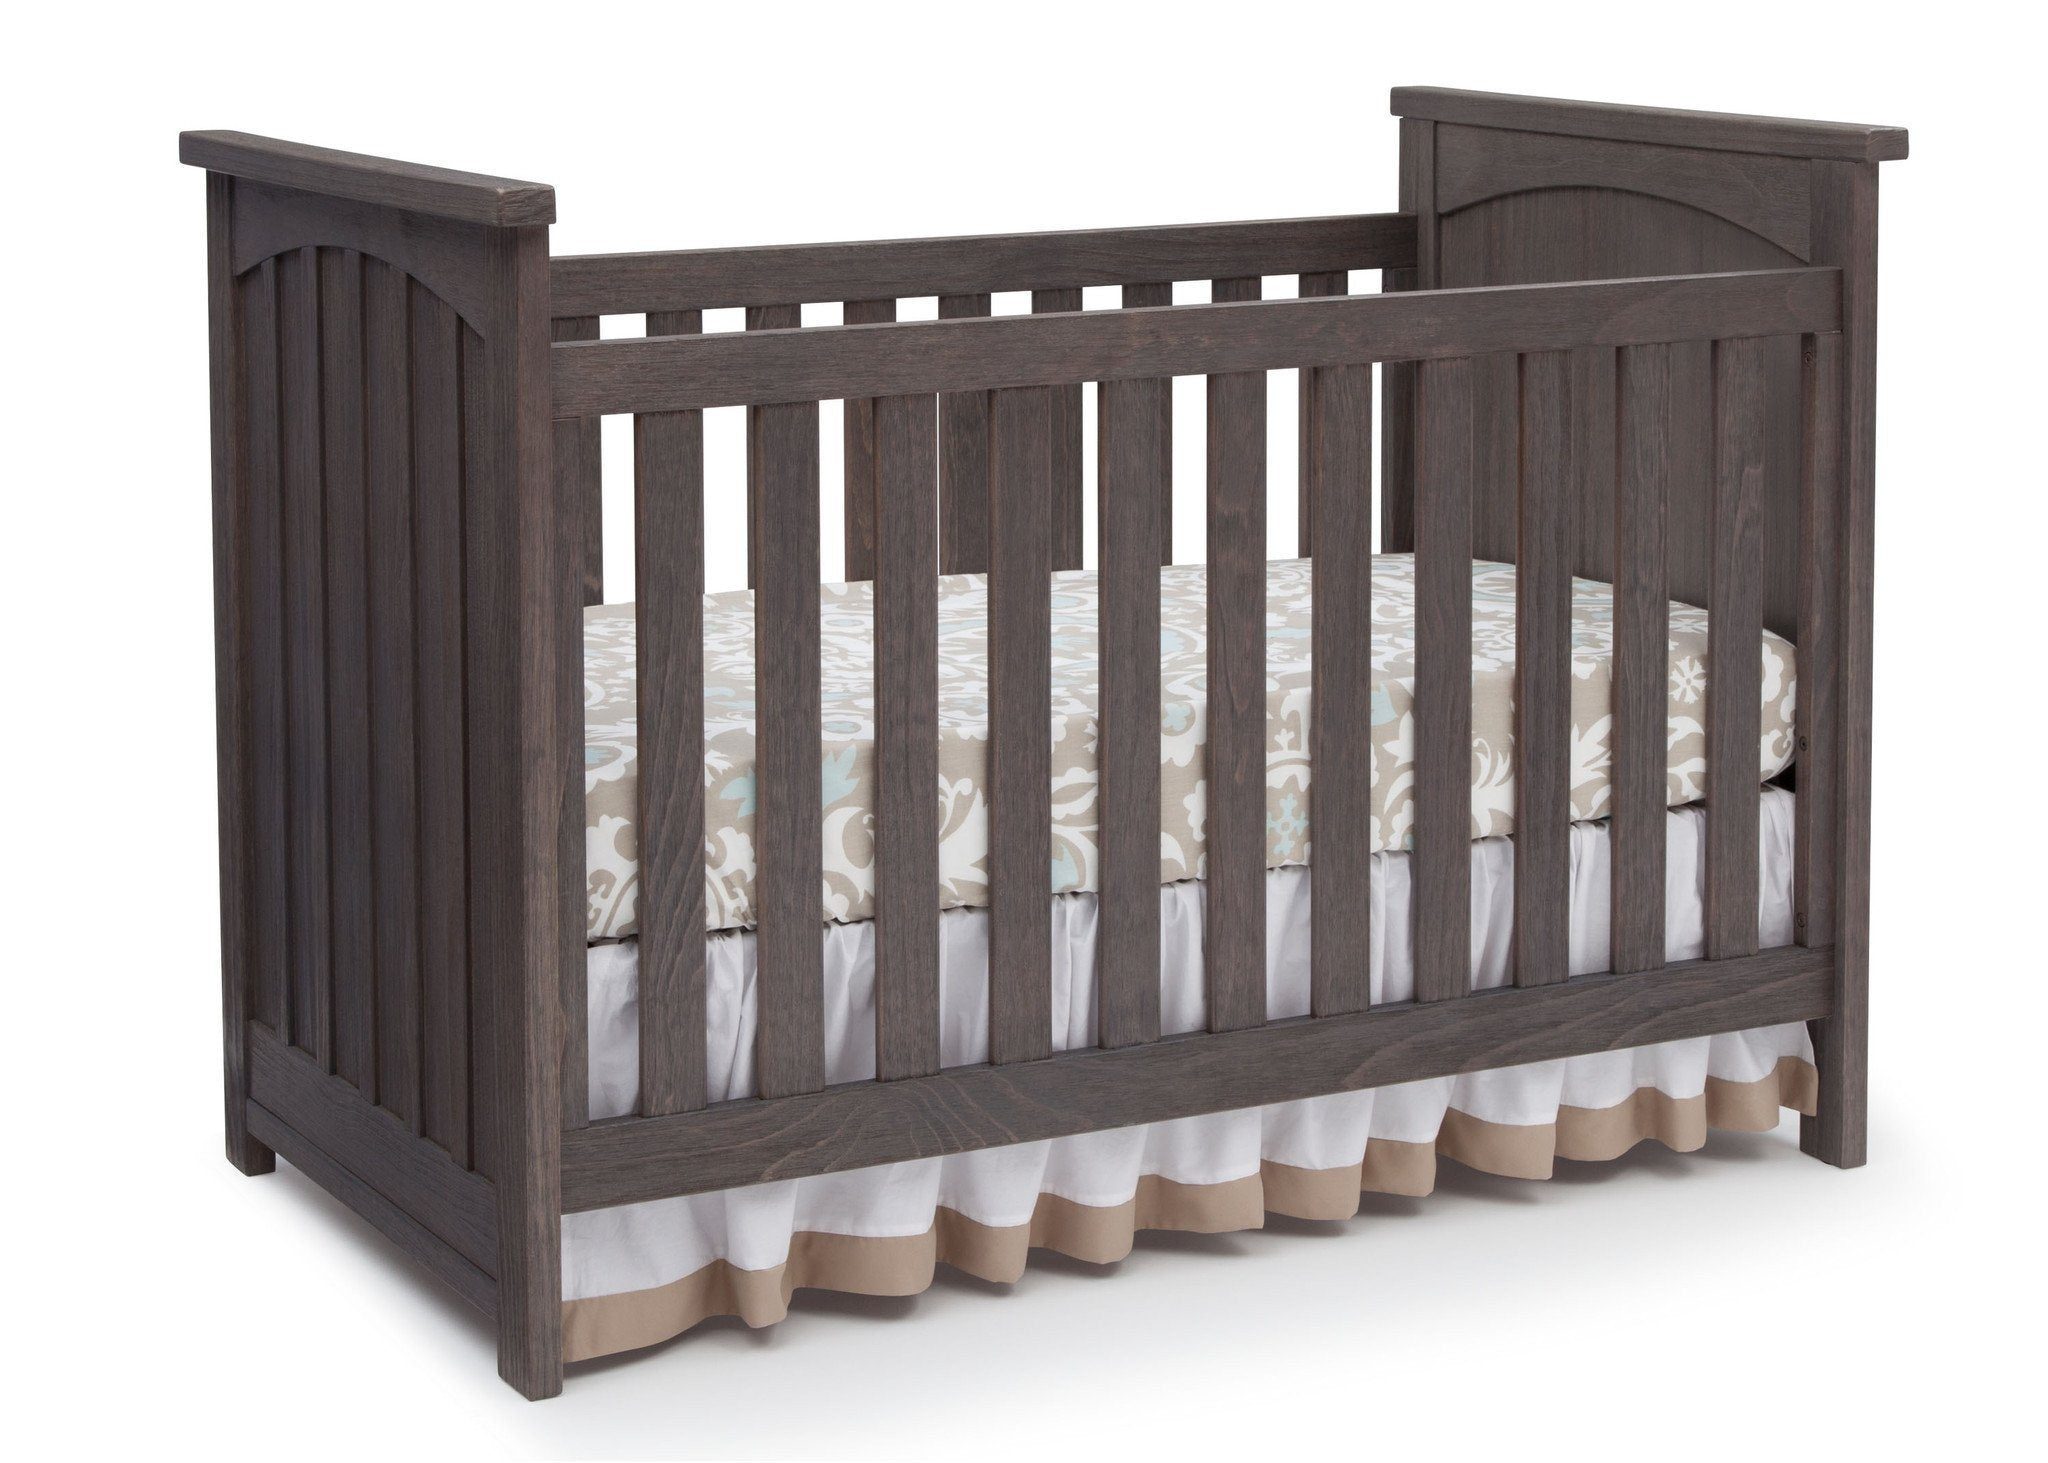 Serta Rustic Grey (084) Northbrook 3-in-1 Crib, Crib Conversion with Side View